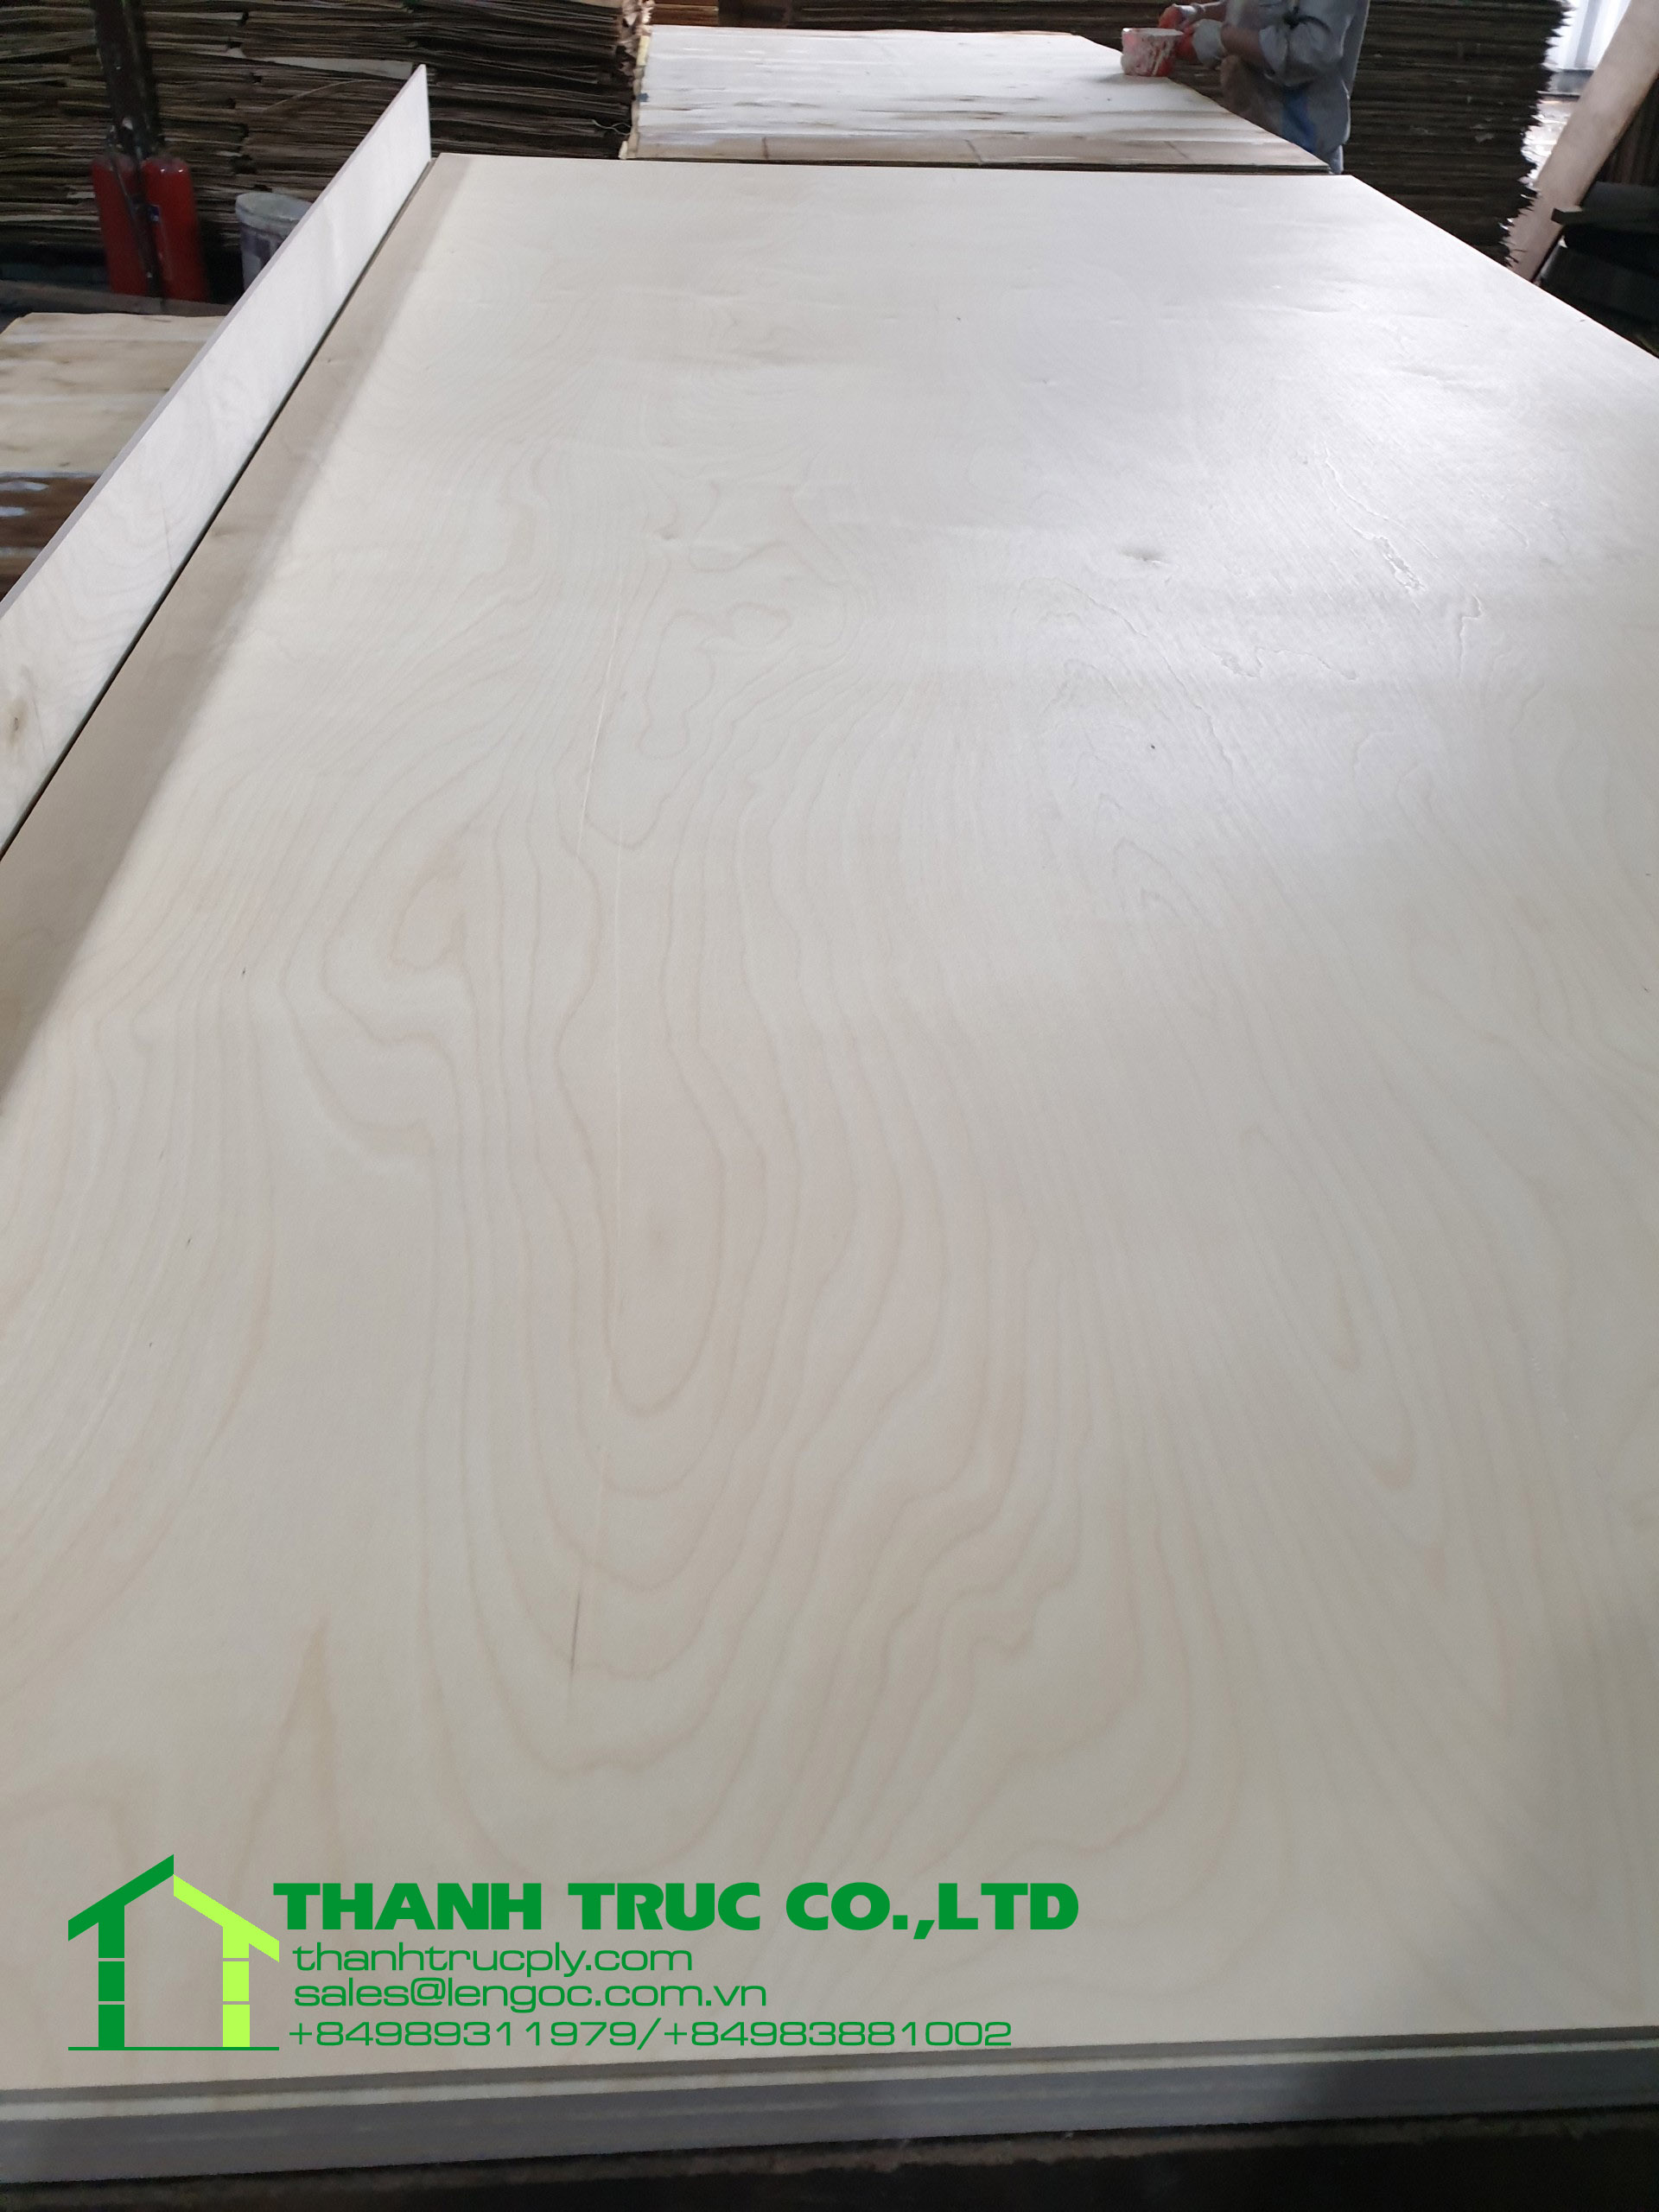 Thanh Truc Manufacture and Trading Co., Ltd